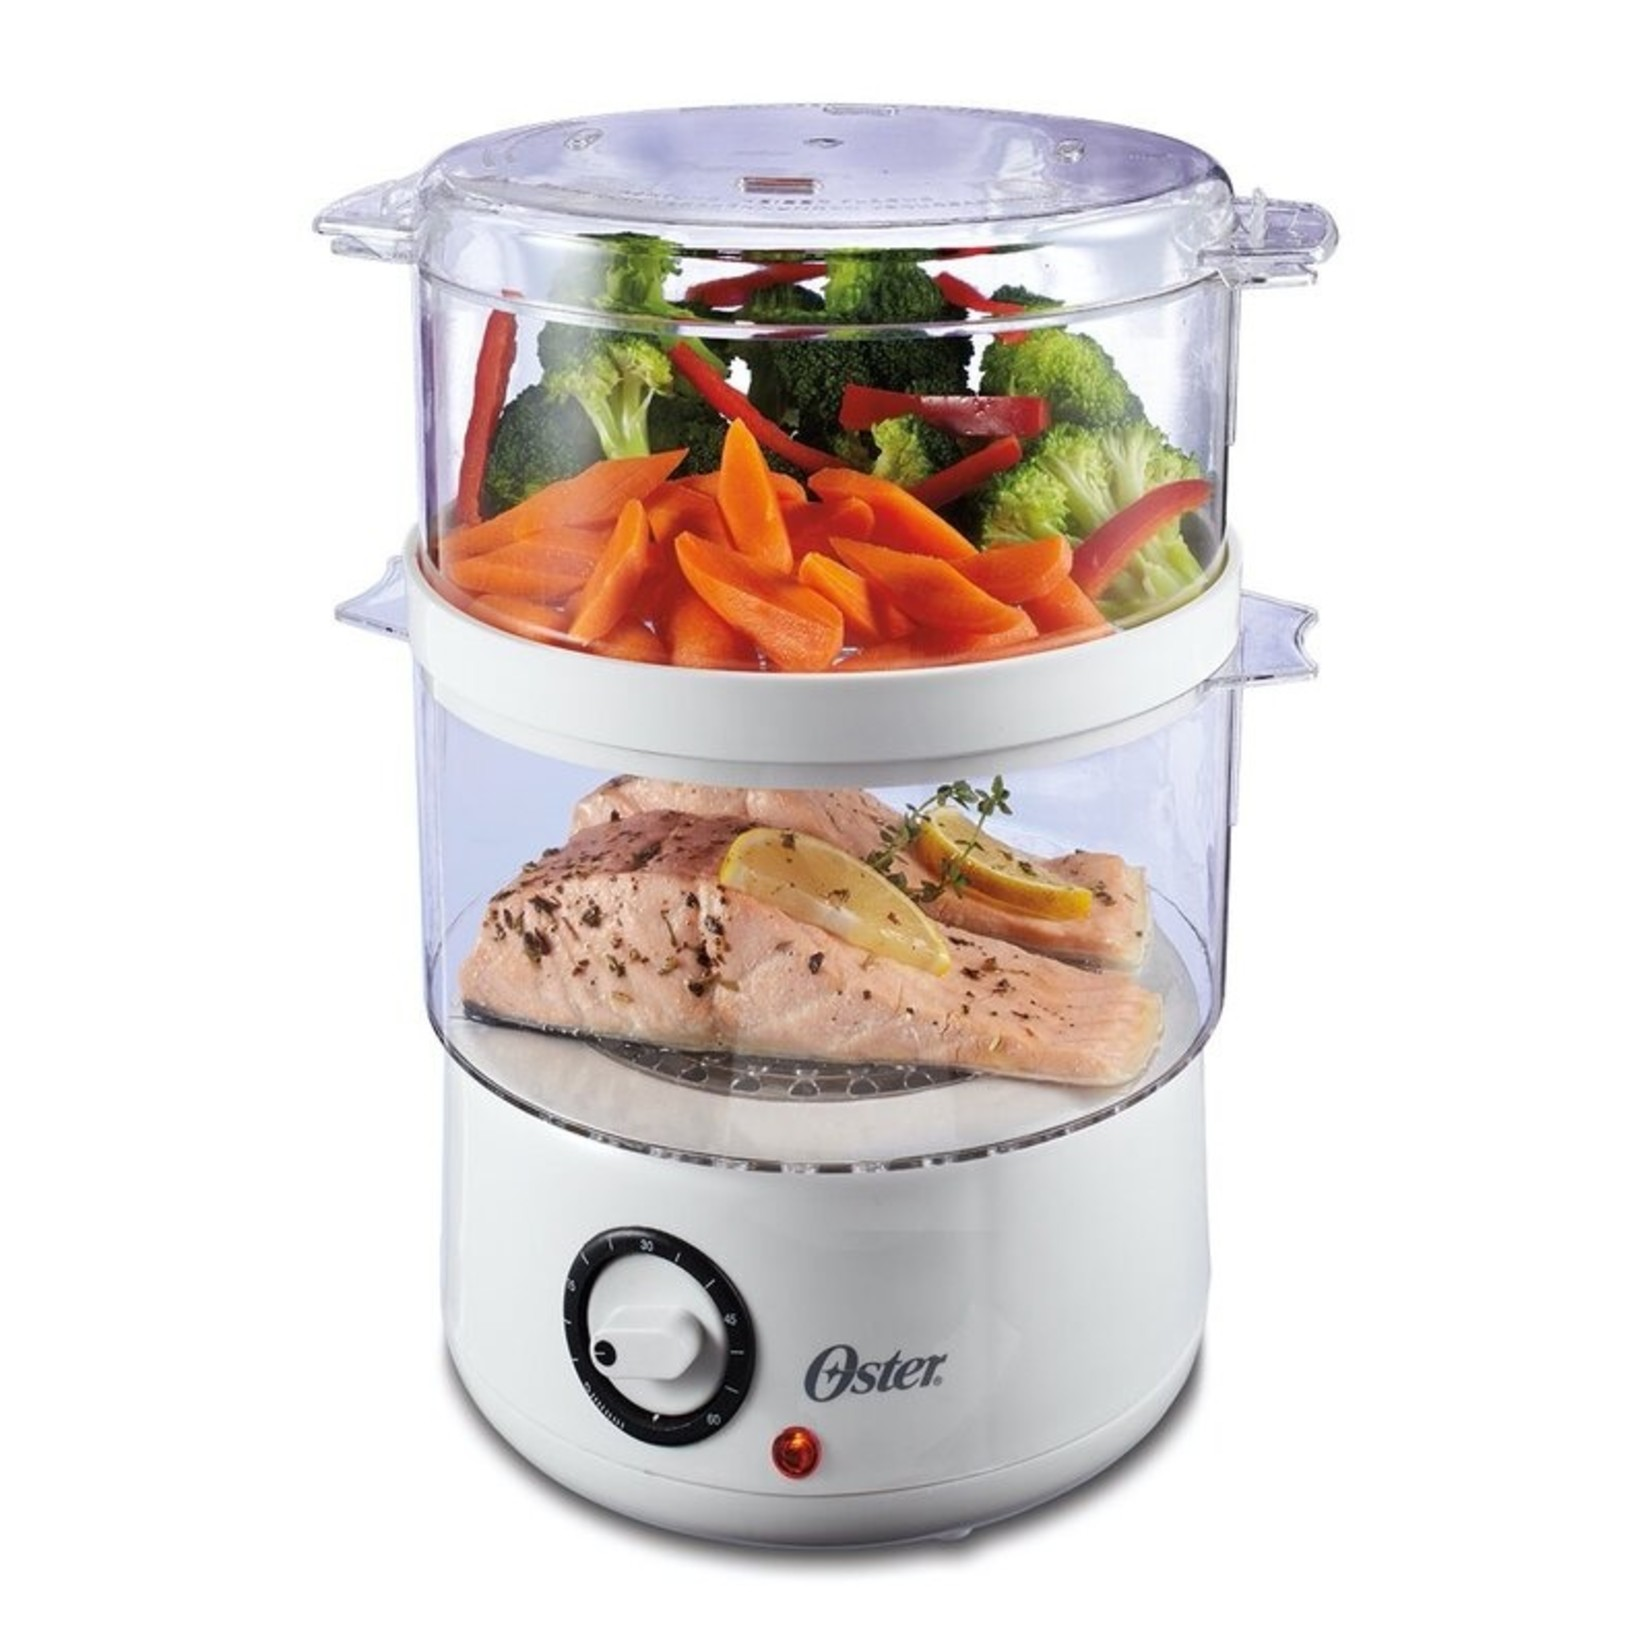 *Oster 5 Qt. Double Tiered Food Steamer